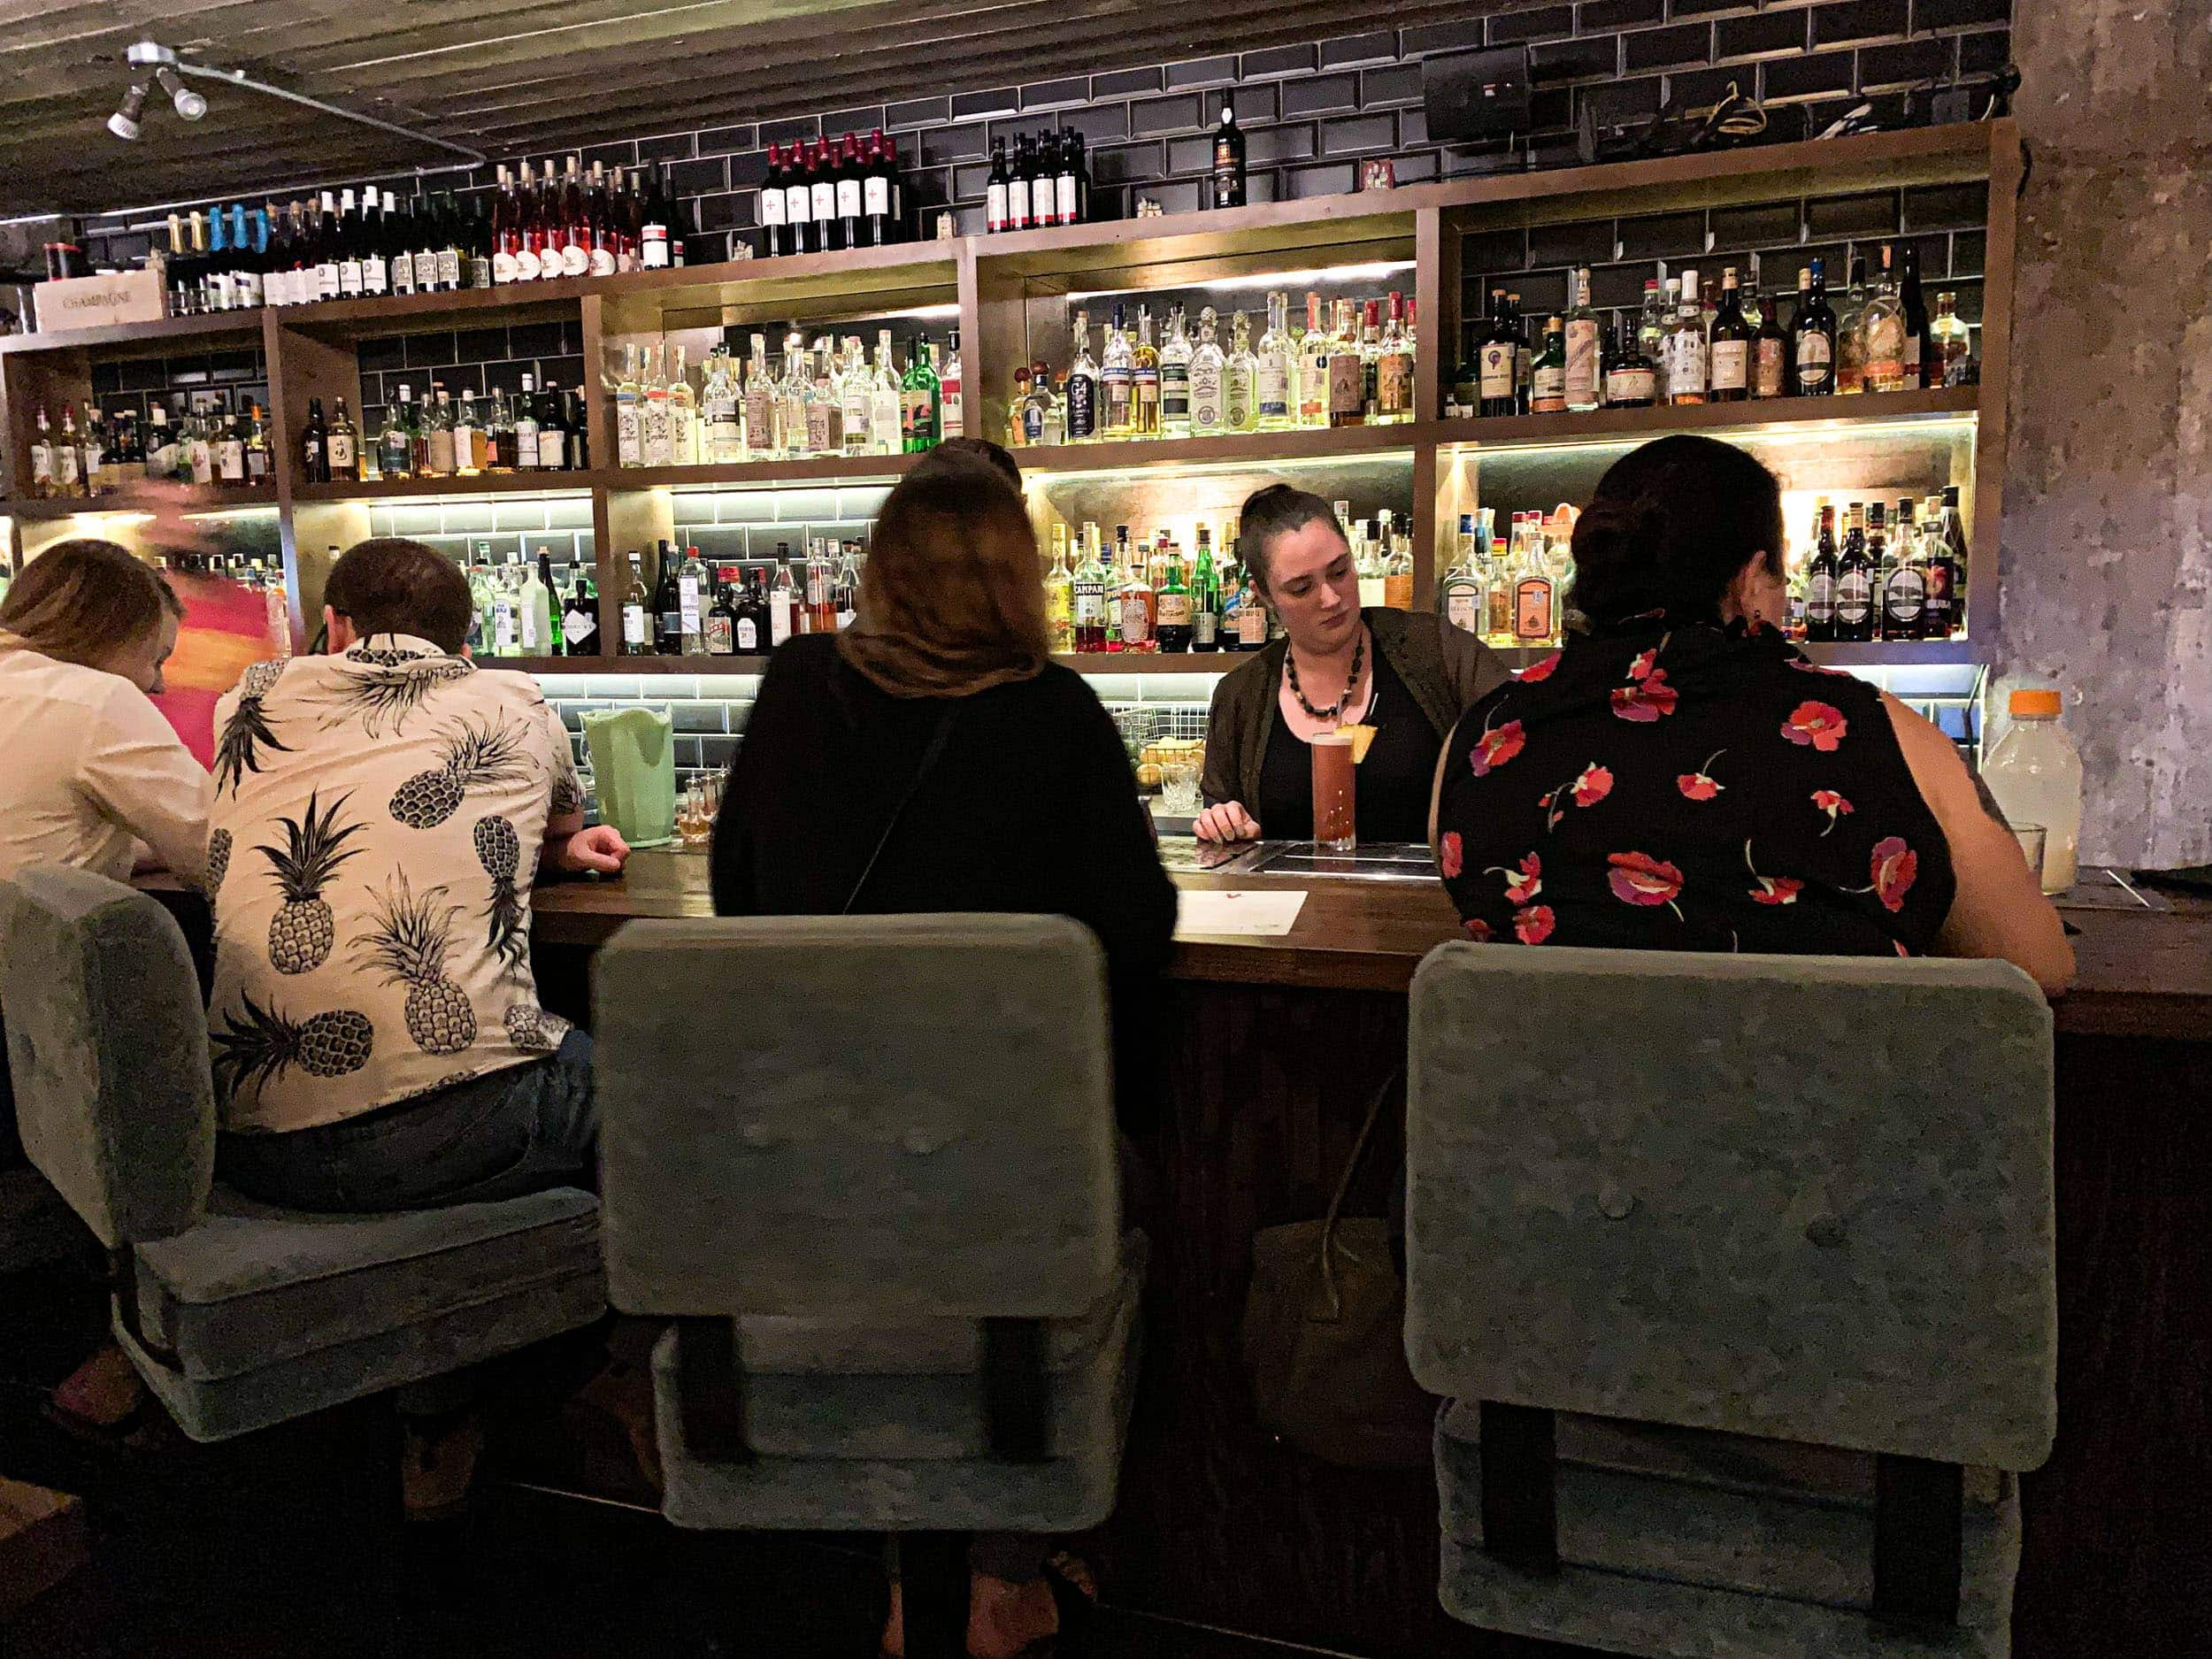 Small Victory is a hidden bar in downtown Austin